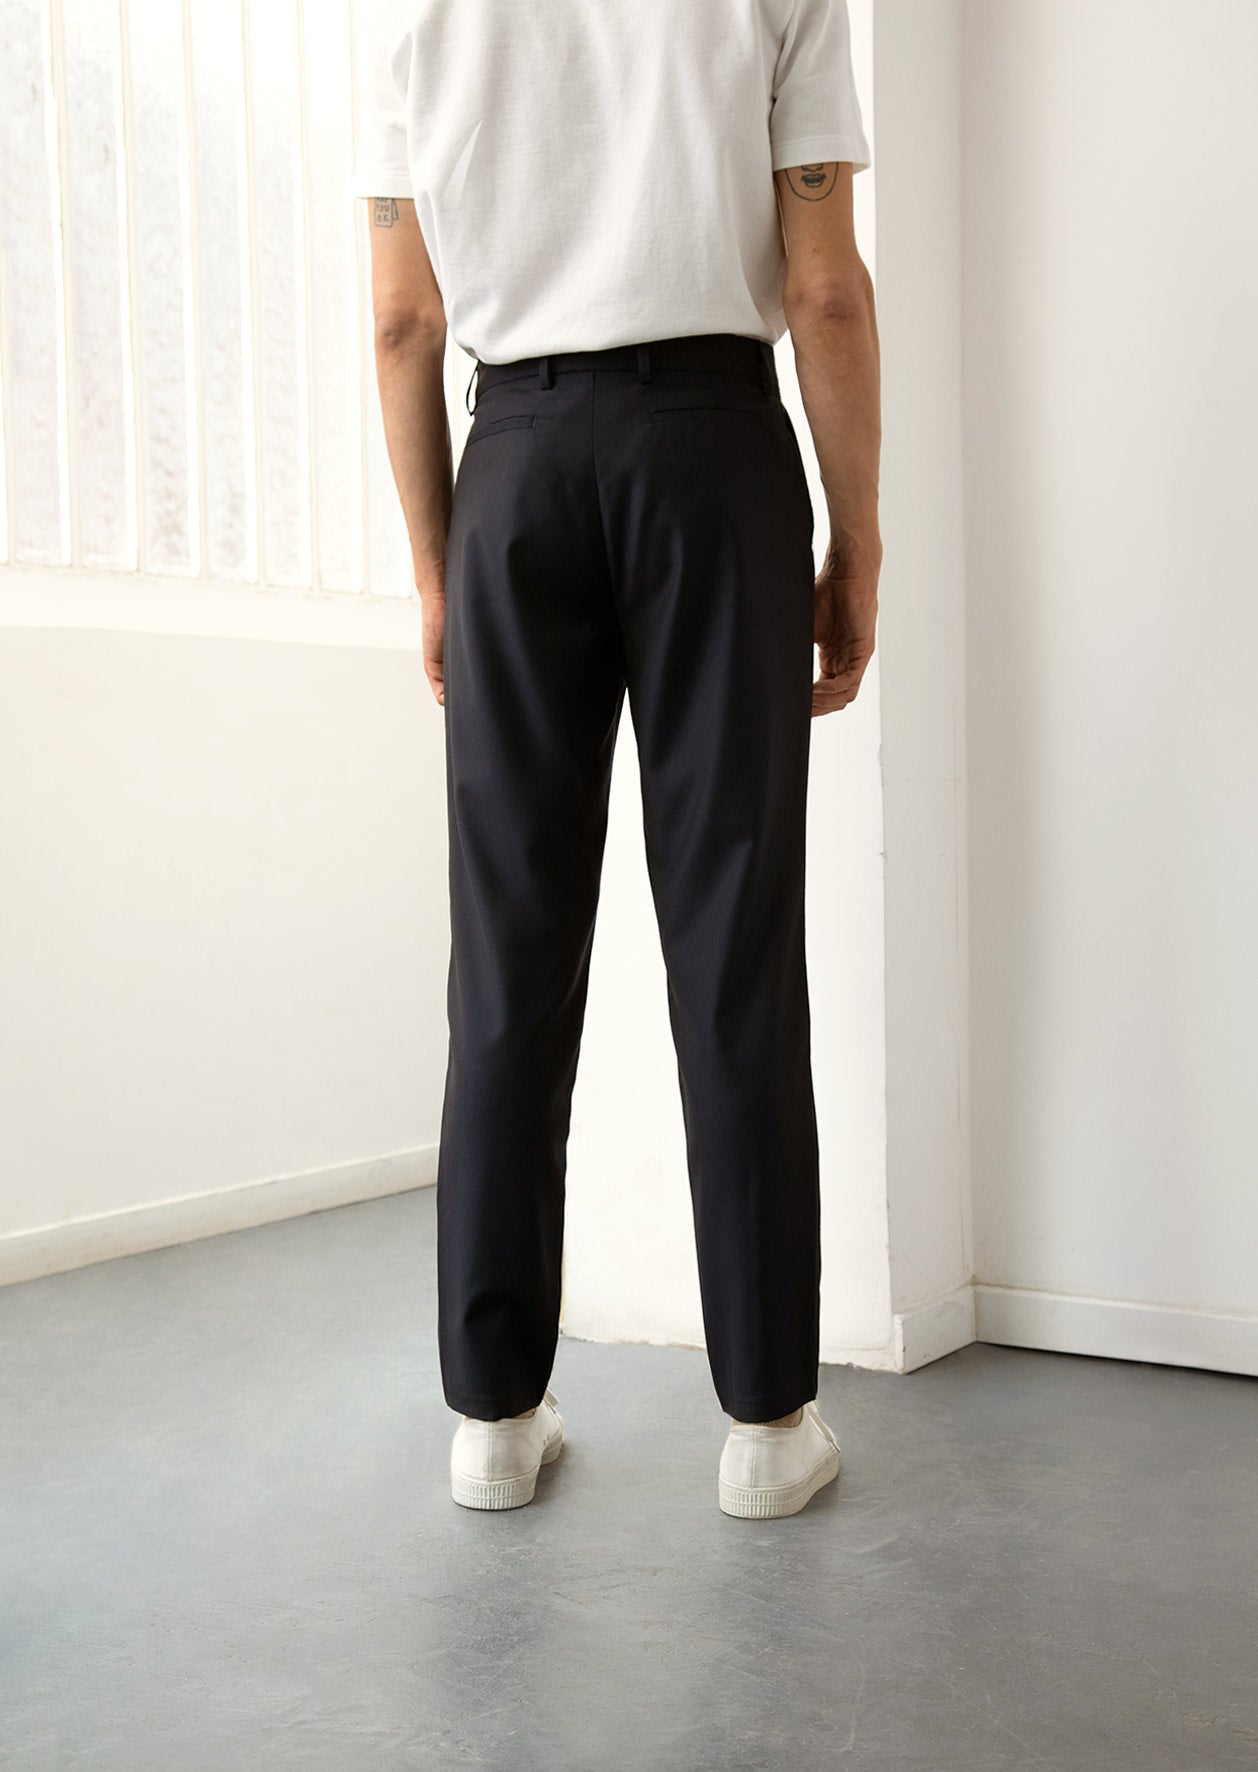 De Bonne Facture - One pleat trousers - Wool twill - Navy